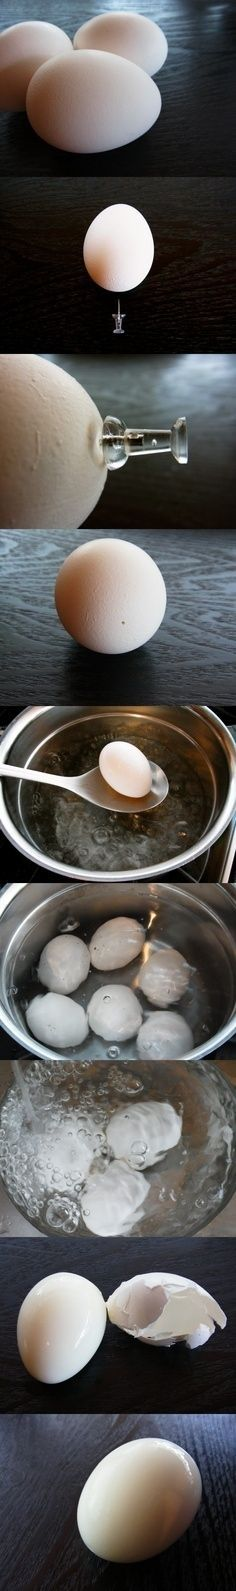 34 Creative Kitchen Hacks That Every Cook Should Know - B. Schroeder 1 of 34 Creative Kitchen Hacks Creative Kitchen, Awesome Kitchen, Smart Kitchen, Perfect Boiled Egg, Perfect Eggs, Cuisine Diverse, Boiled Eggs, Hard Boiled, Baking Tips